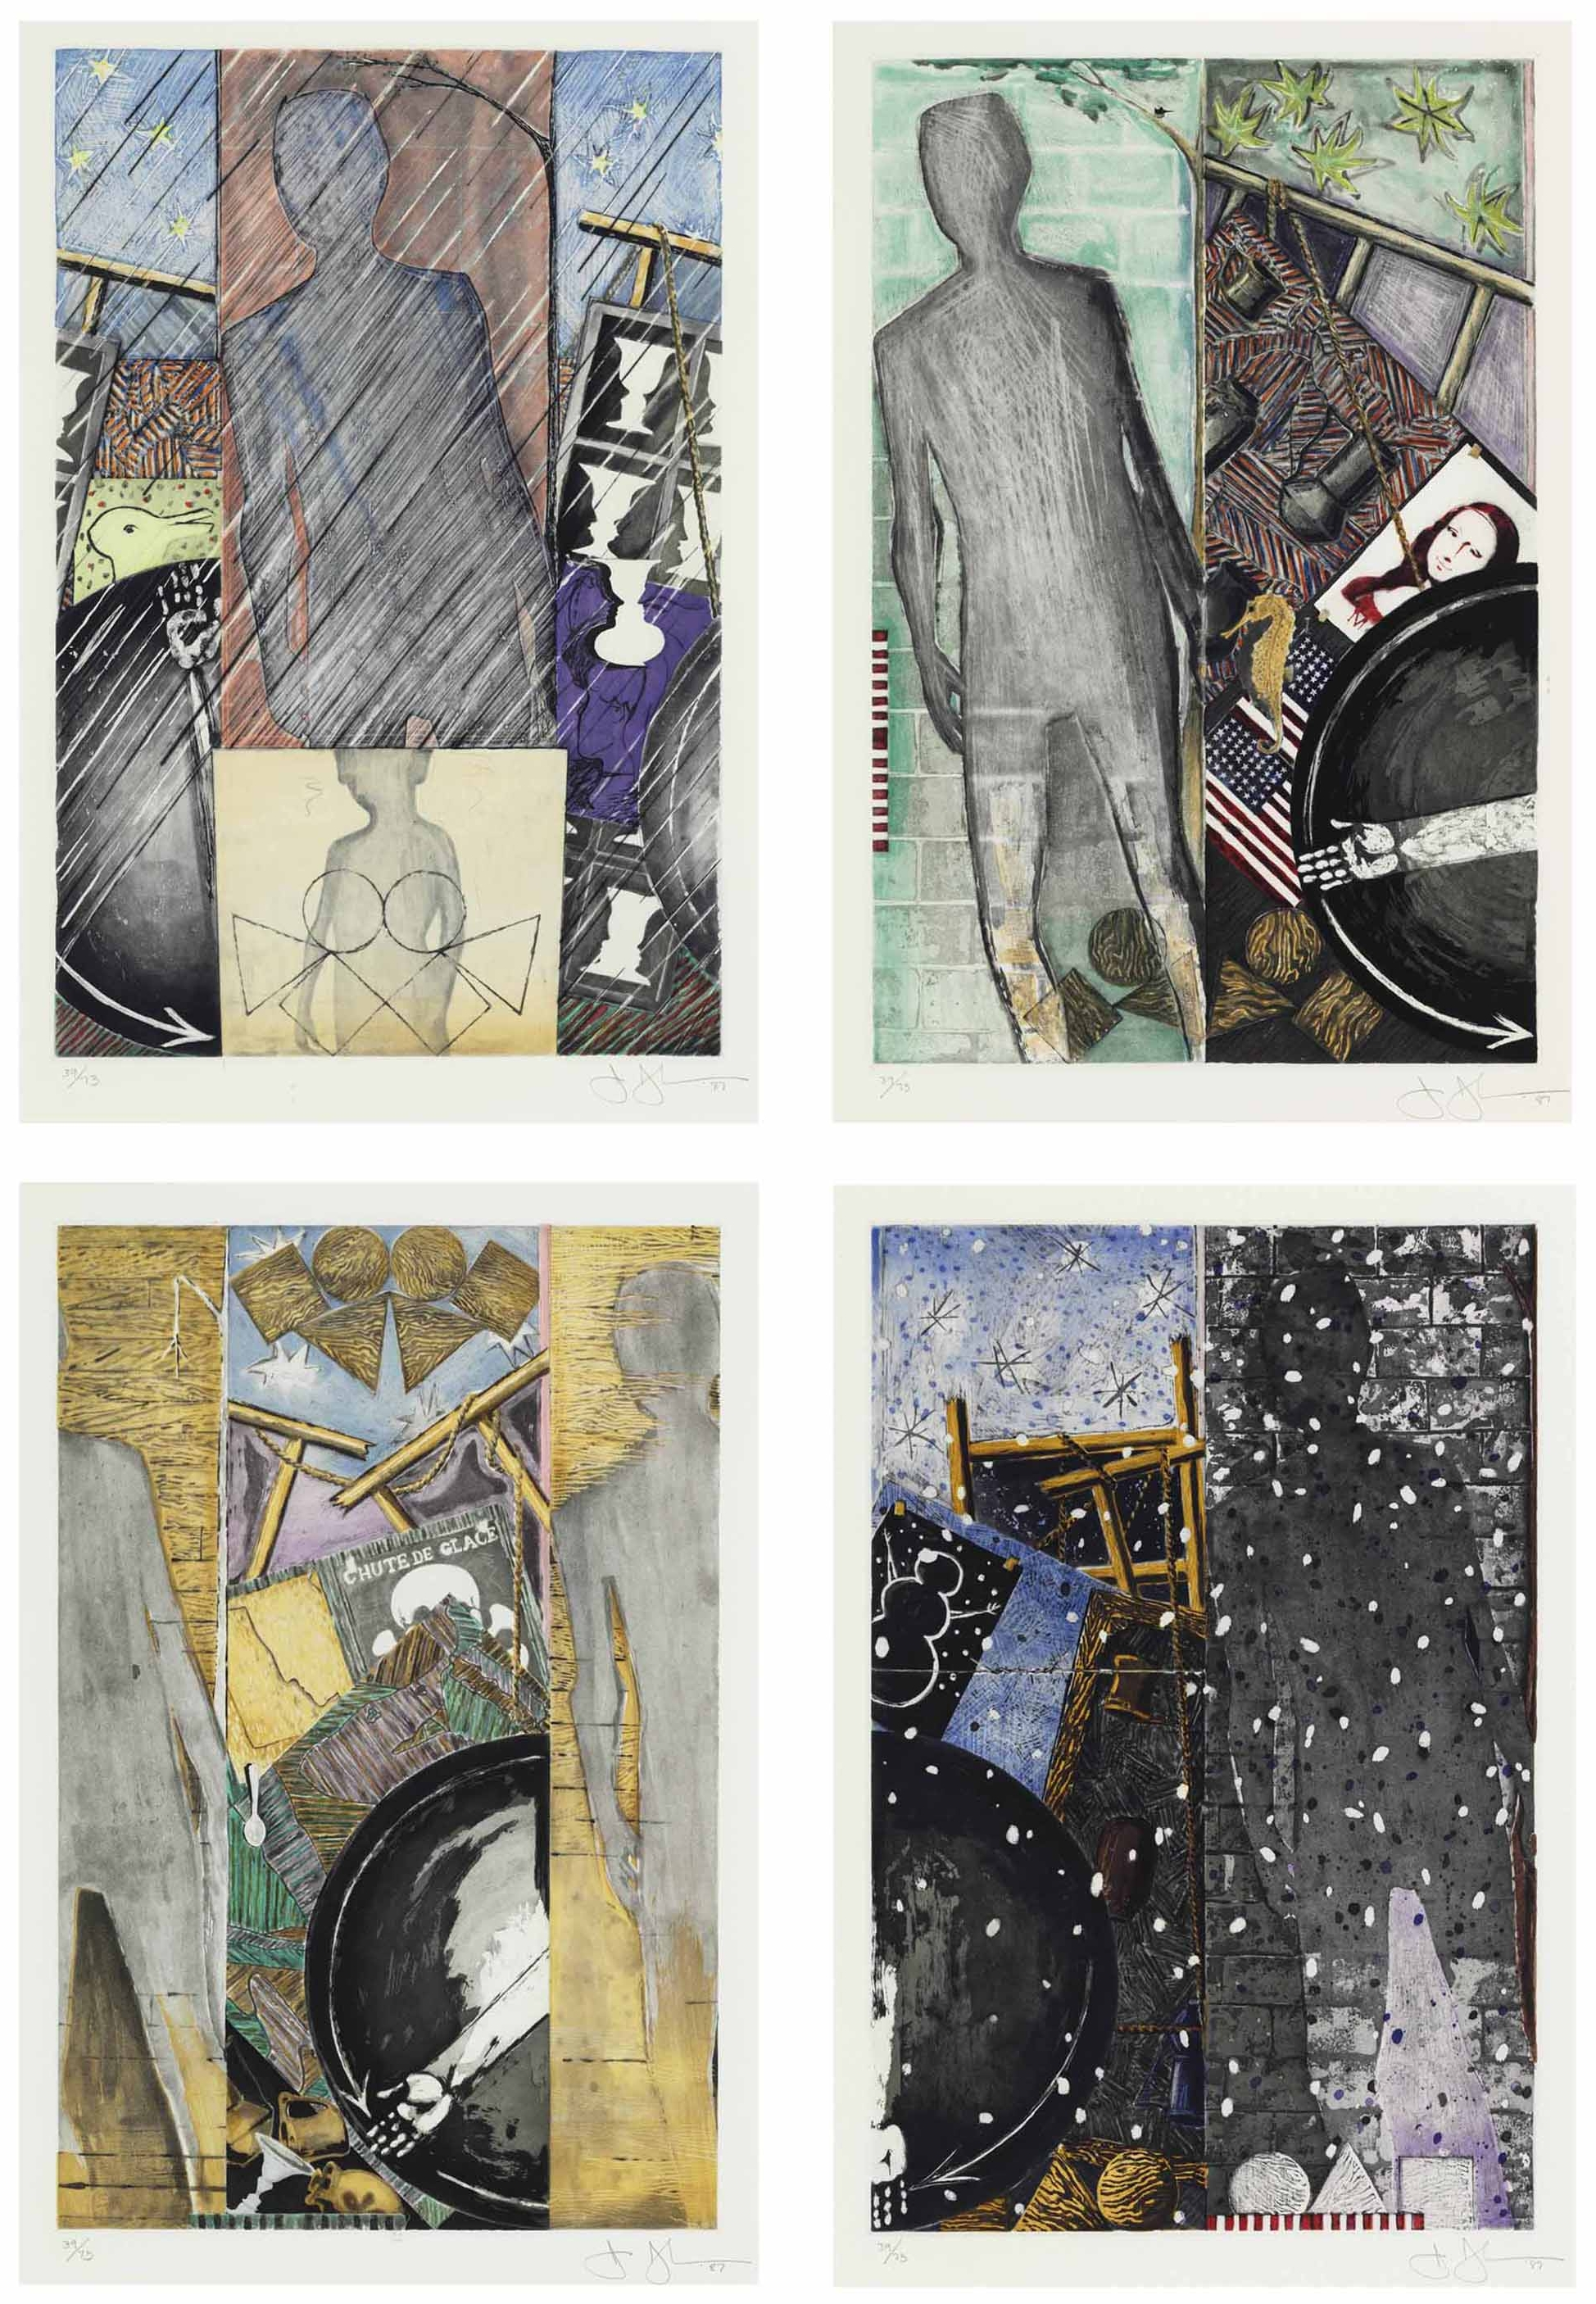 """Jasper Johns,  The Seasons: Spring, Summer, Fall, Winter  (1987). From the  Metropolitan Museum of Art : """"These four prints of The Seasons explore artifacts and seasonal symbols to represent the epochs of life and the cycles of growth and aging. The works review many motifs used previously in Johns's work - e.g. the arm in a partial circle rotates like a clock through these panels. Optical illusions such as duck/rabbit or old woman/young woman in """"Spring"""" explore the nature of seeing and experience. In """"Fall,"""" a profile of Marcel Duchamp (a spiritual and artistic mentor to Johns) is included next to a skull and crossbones from a Swiss sign warning of avalanche danger, a reminder of mortality. The Seasons also incorporates elements of more reflective imagery that emerged in his work in the 1980s. A scaled down version of the artist's own shadow refers to Johns's meditation on his own path."""""""